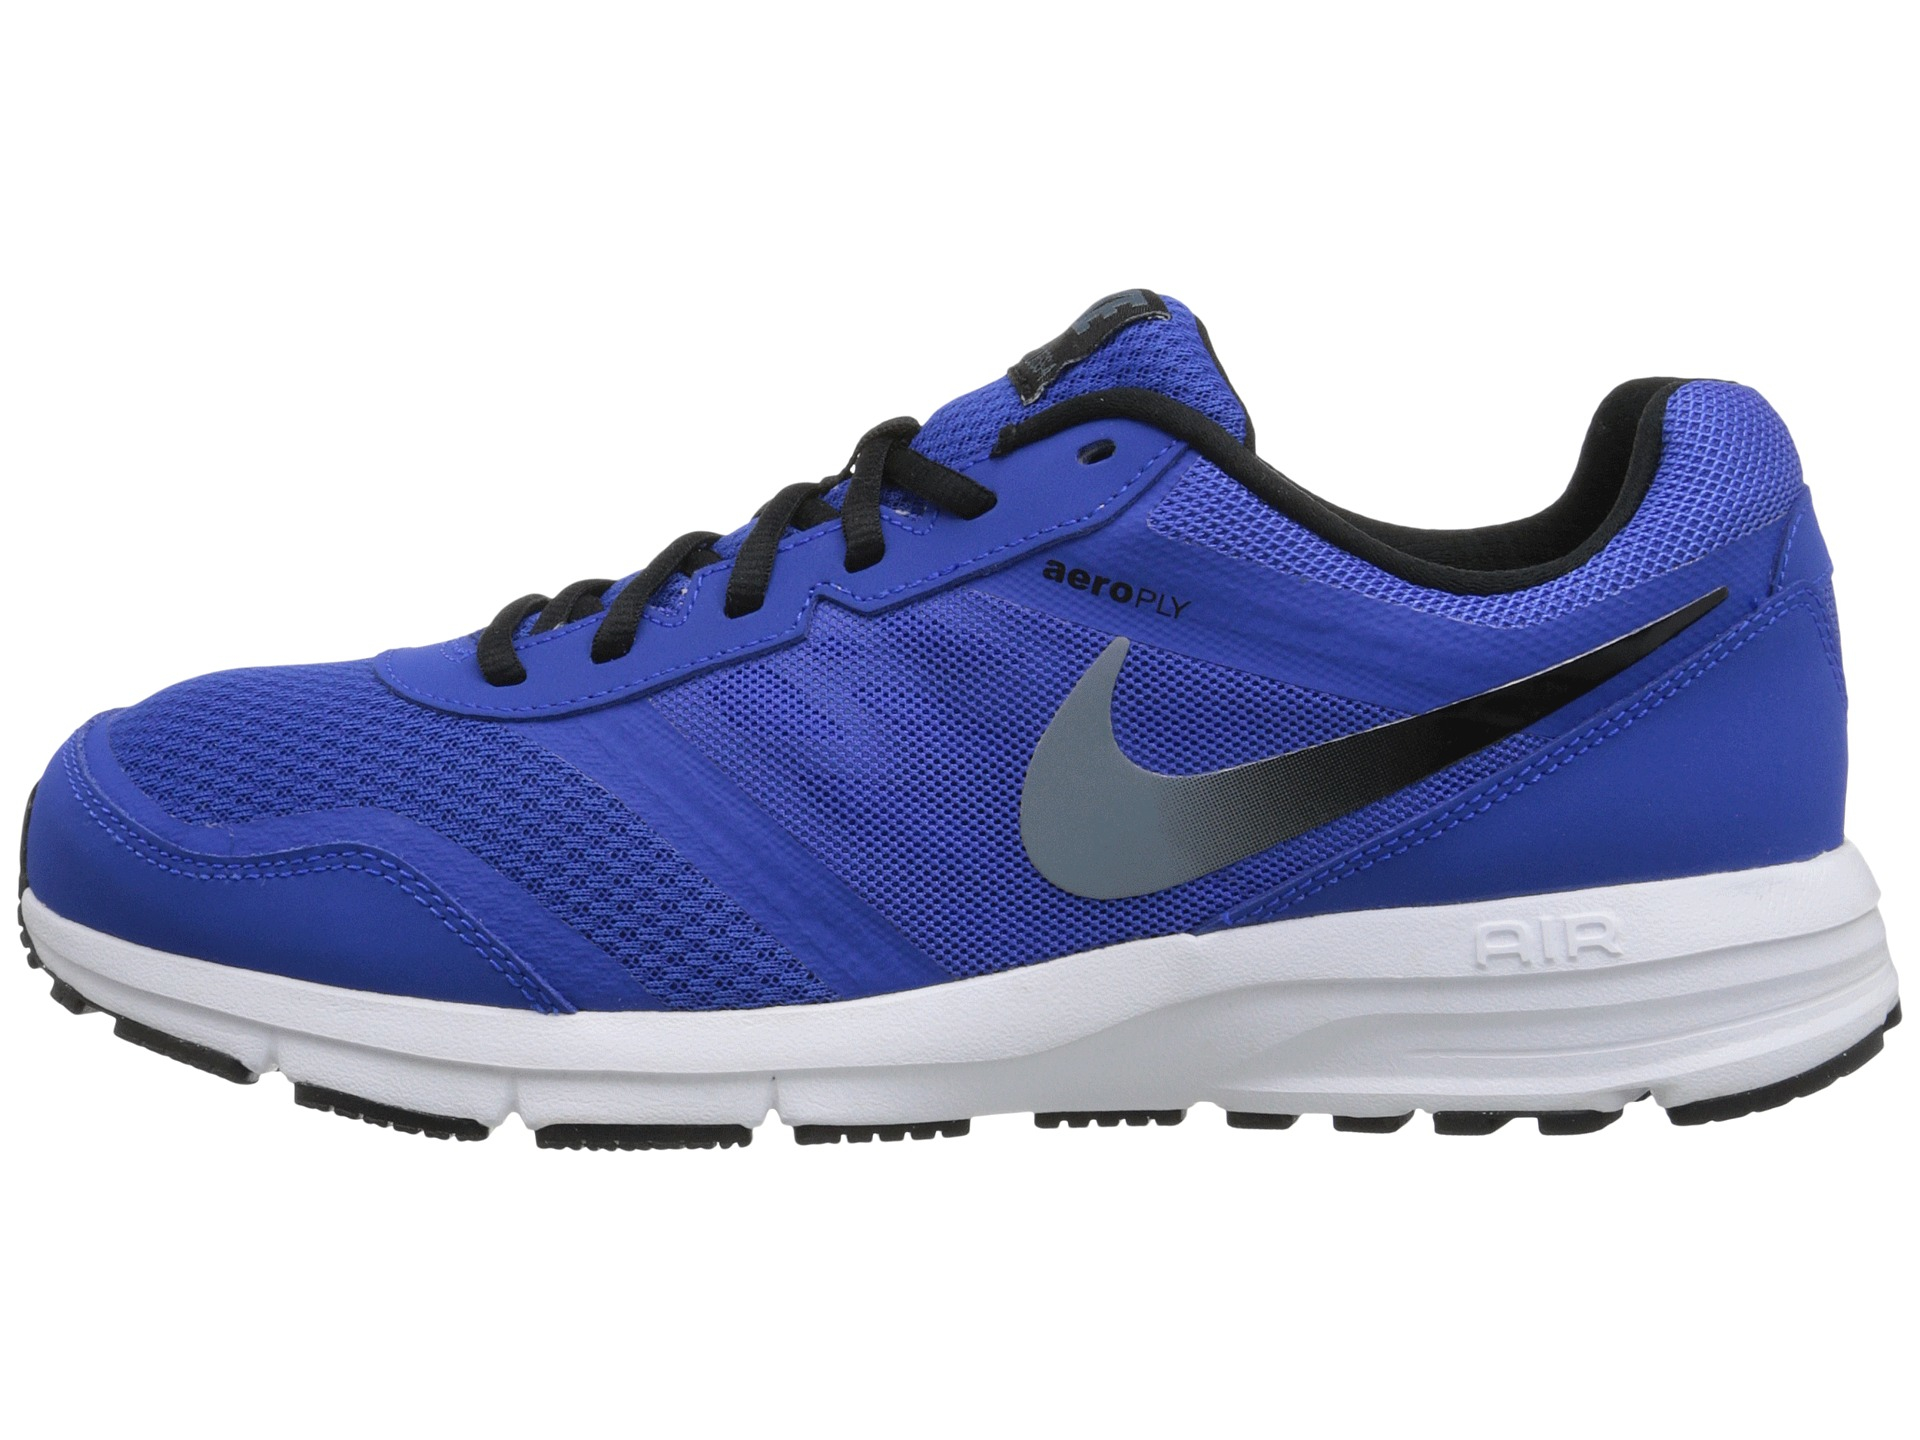 Lyst - Nike Air Relentless 4 in Blue for Men 03f0f03b2